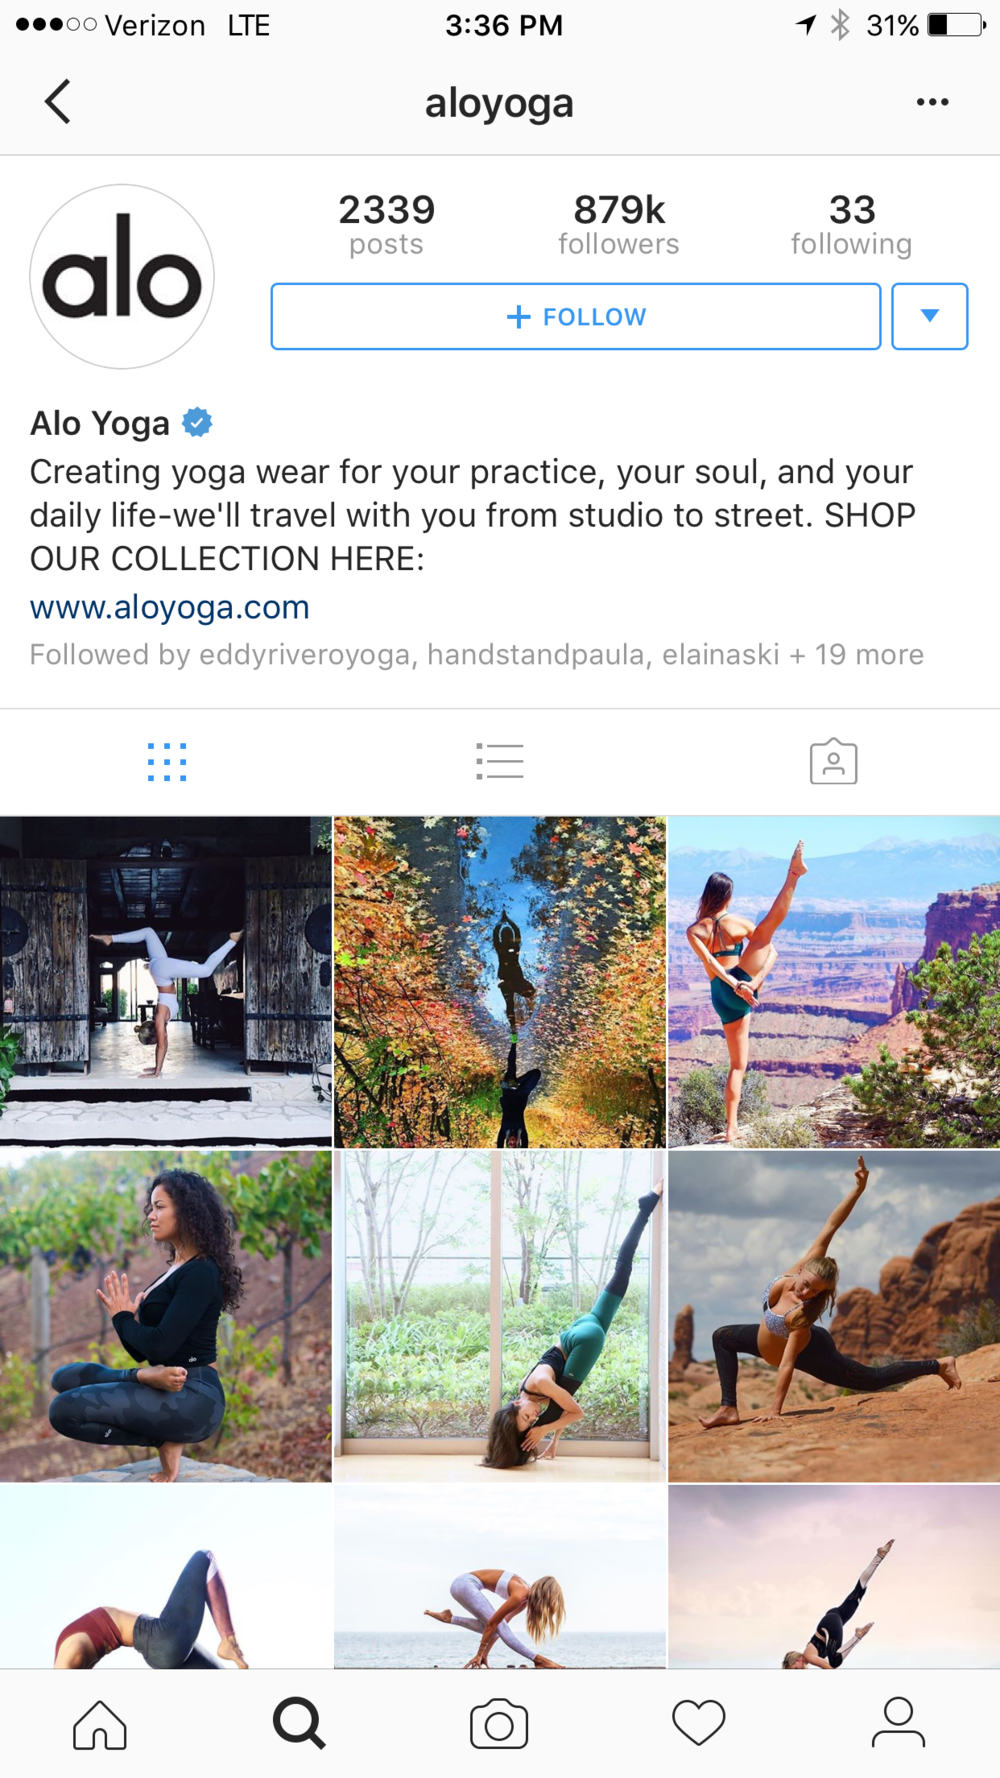 I came home to the sweetest surprise! A feature on Alo Yoga's Instagram page :)! If you don't follow them already make sure you do @aloyoga, they post endless yogi inspo.